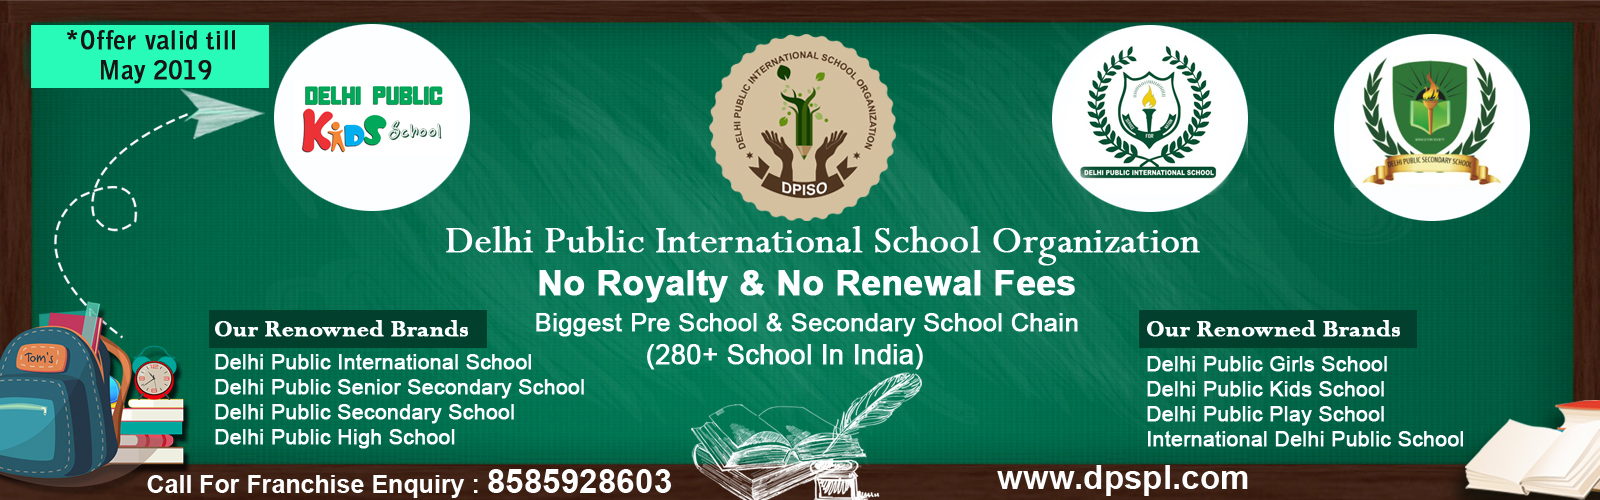 admin/photos/Delhi Public International School Organization